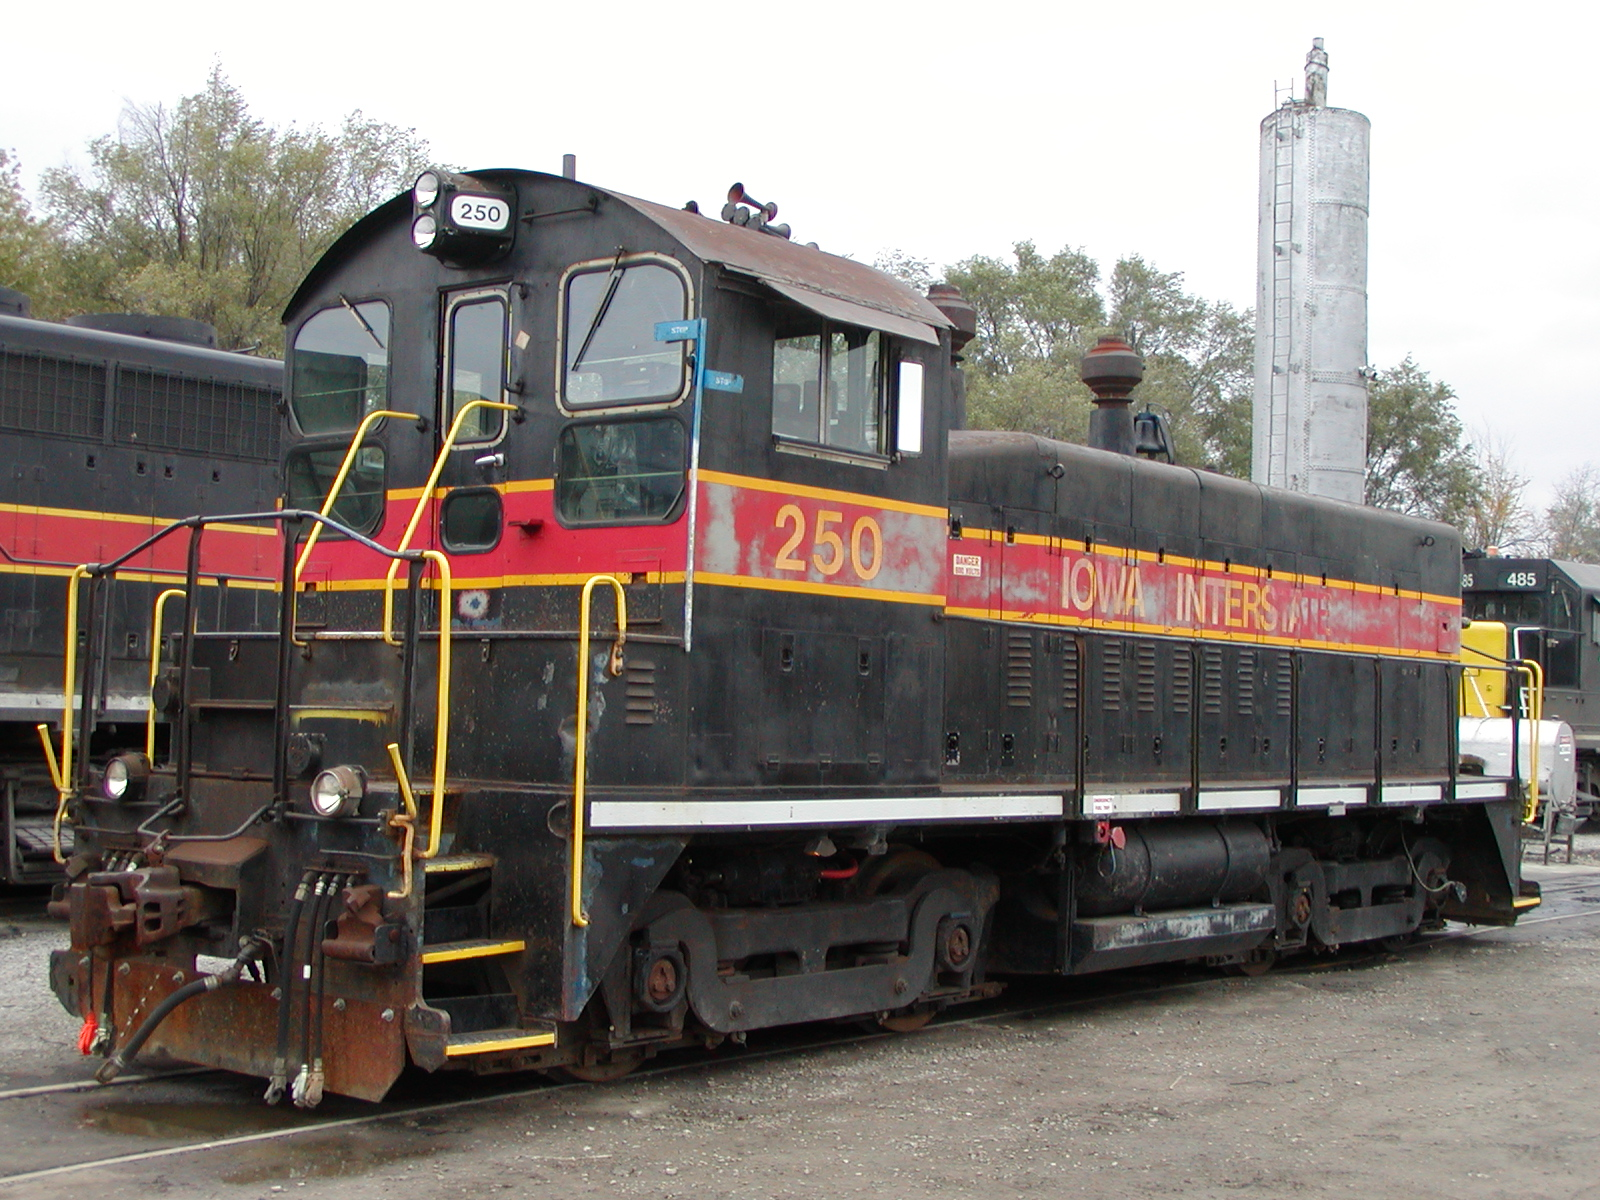 IAIS 250 at Council Bluffs IA on 22-Oct-2006.